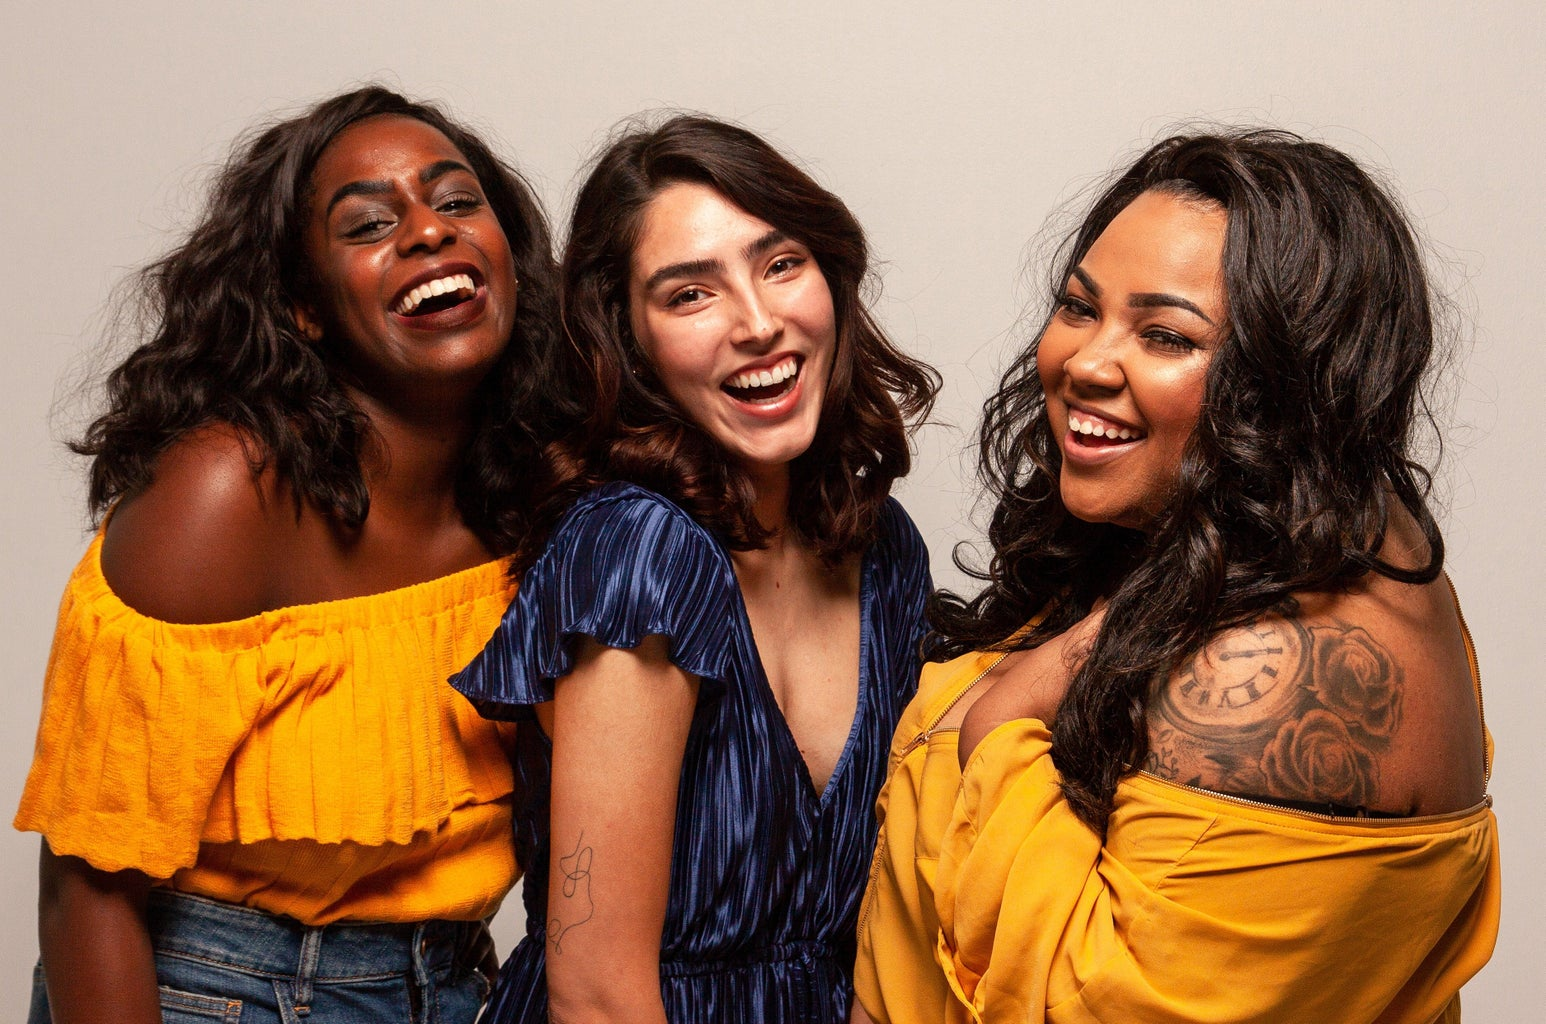 Three women laughing at the camera